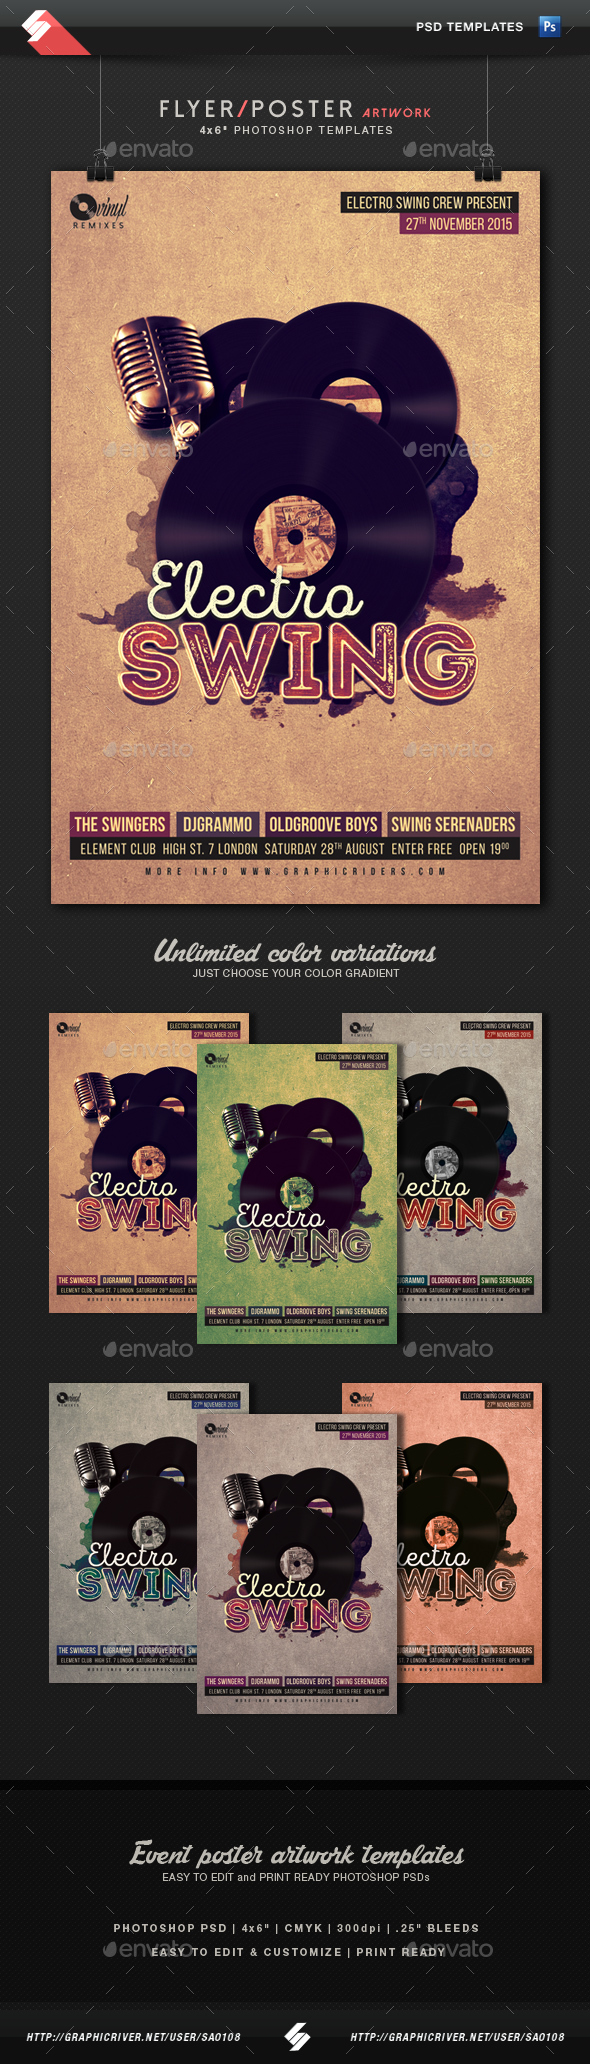 Electro Swing Party Flyer Template - Clubs & Parties Events